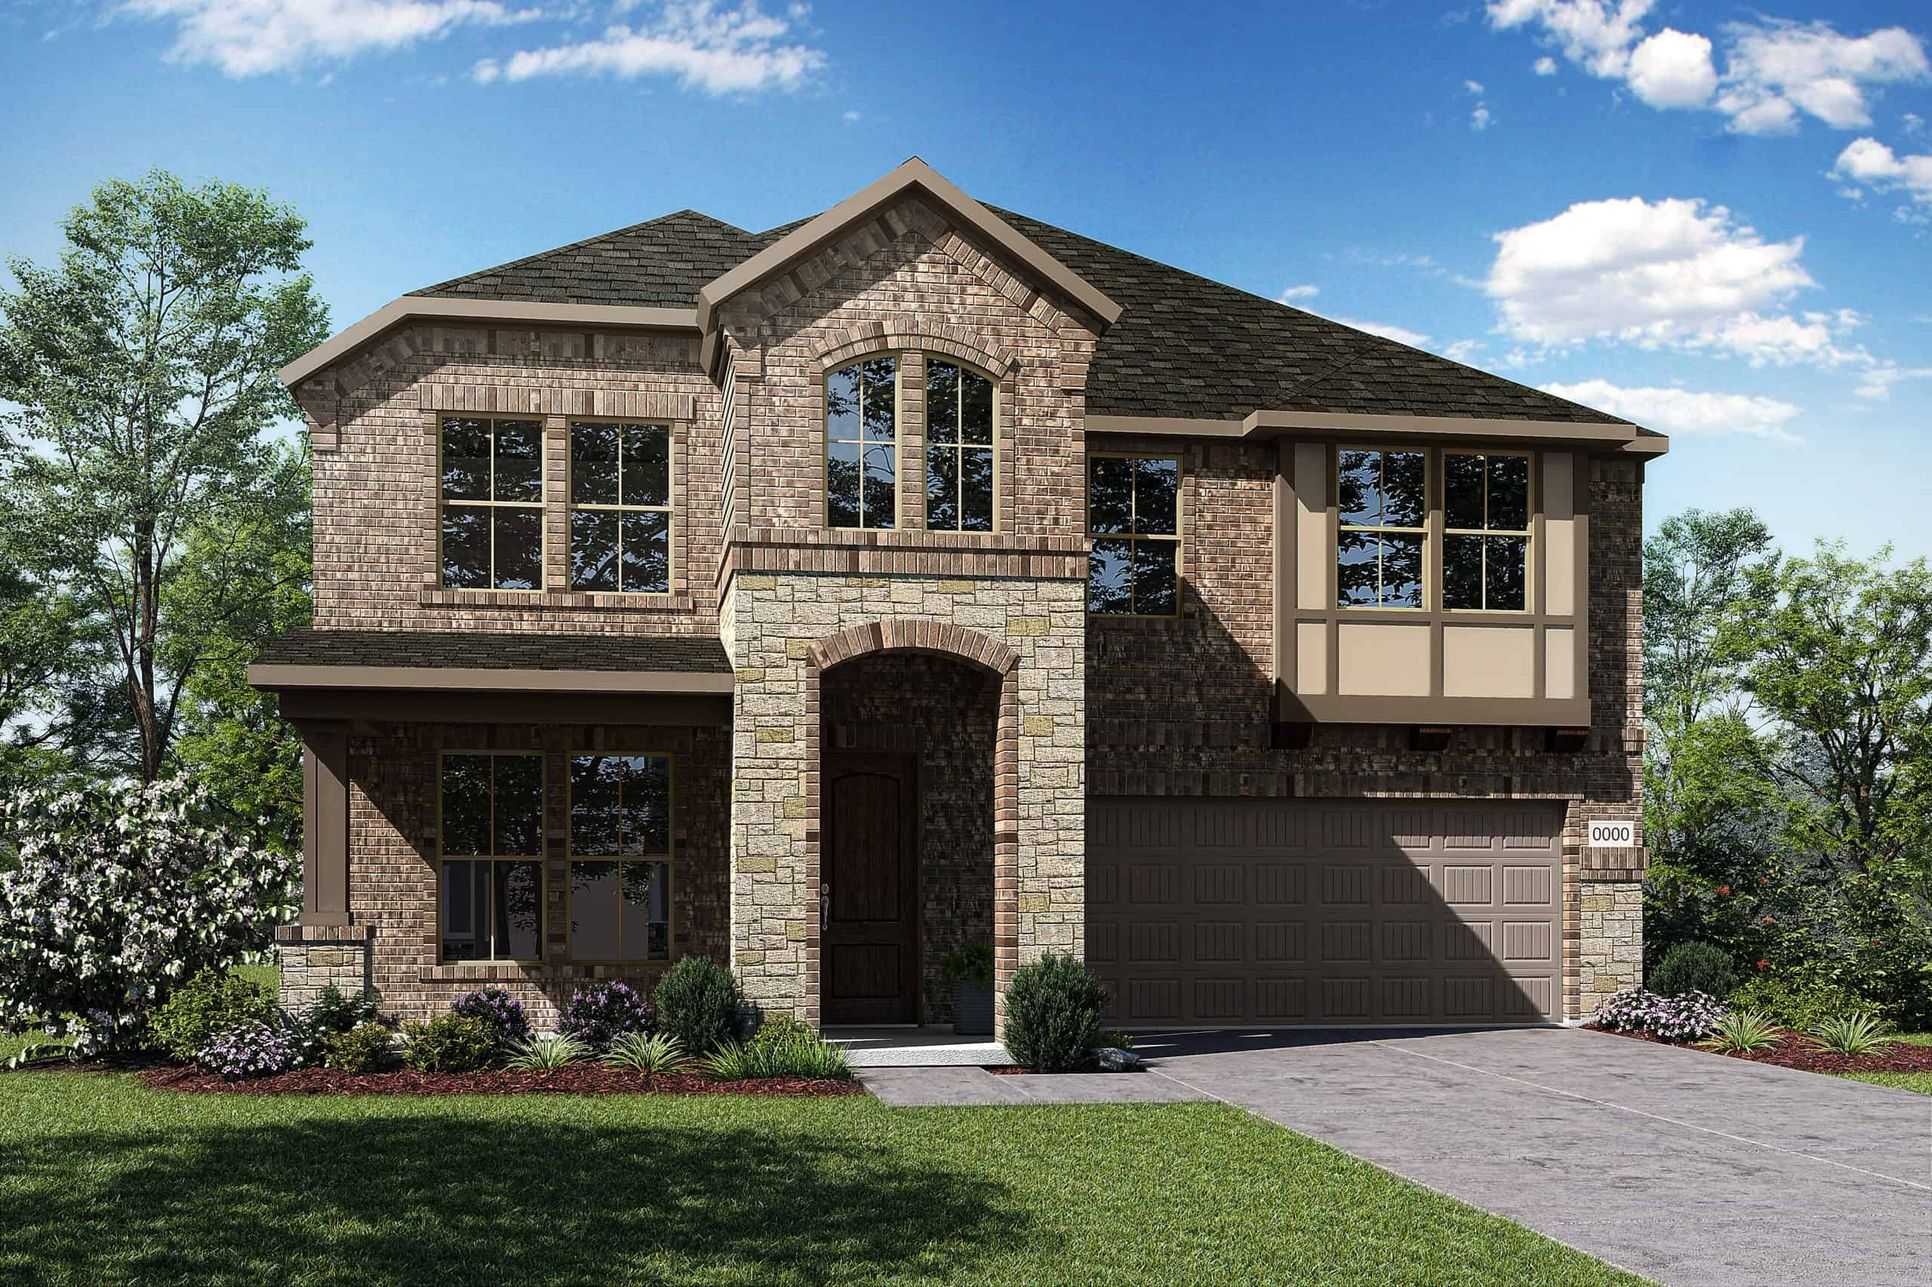 Elevation F:Elevation F is a two story tudor isnspired brick and stone home design featuring large front porch a